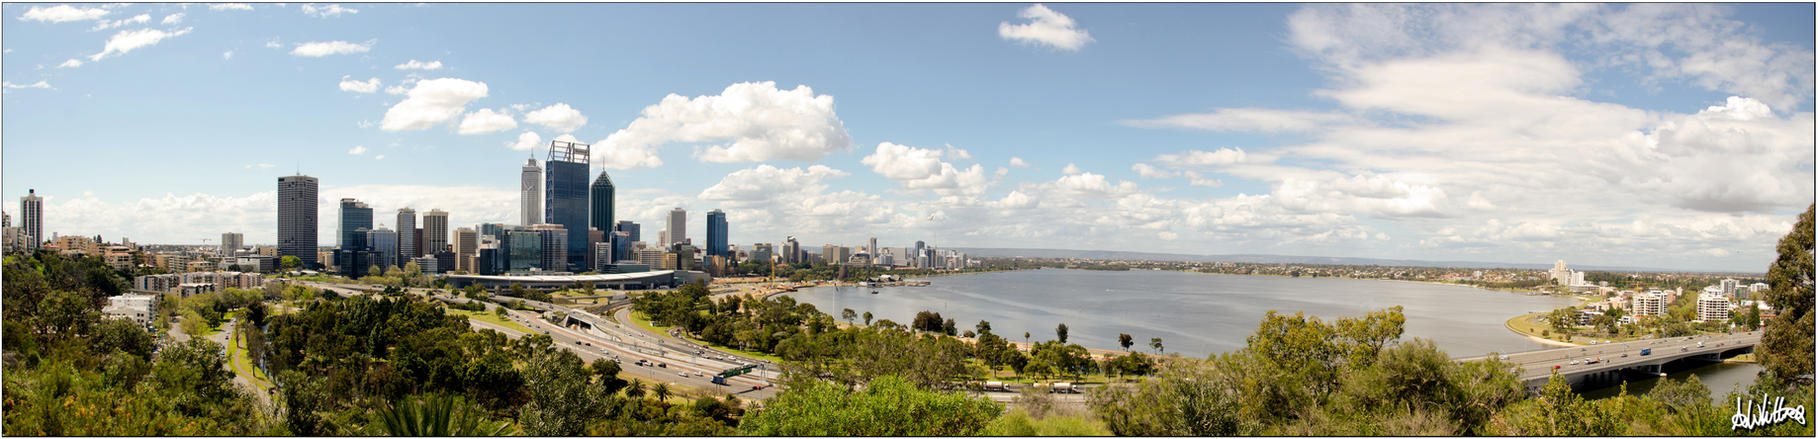 Perth Panorama by truthdenied